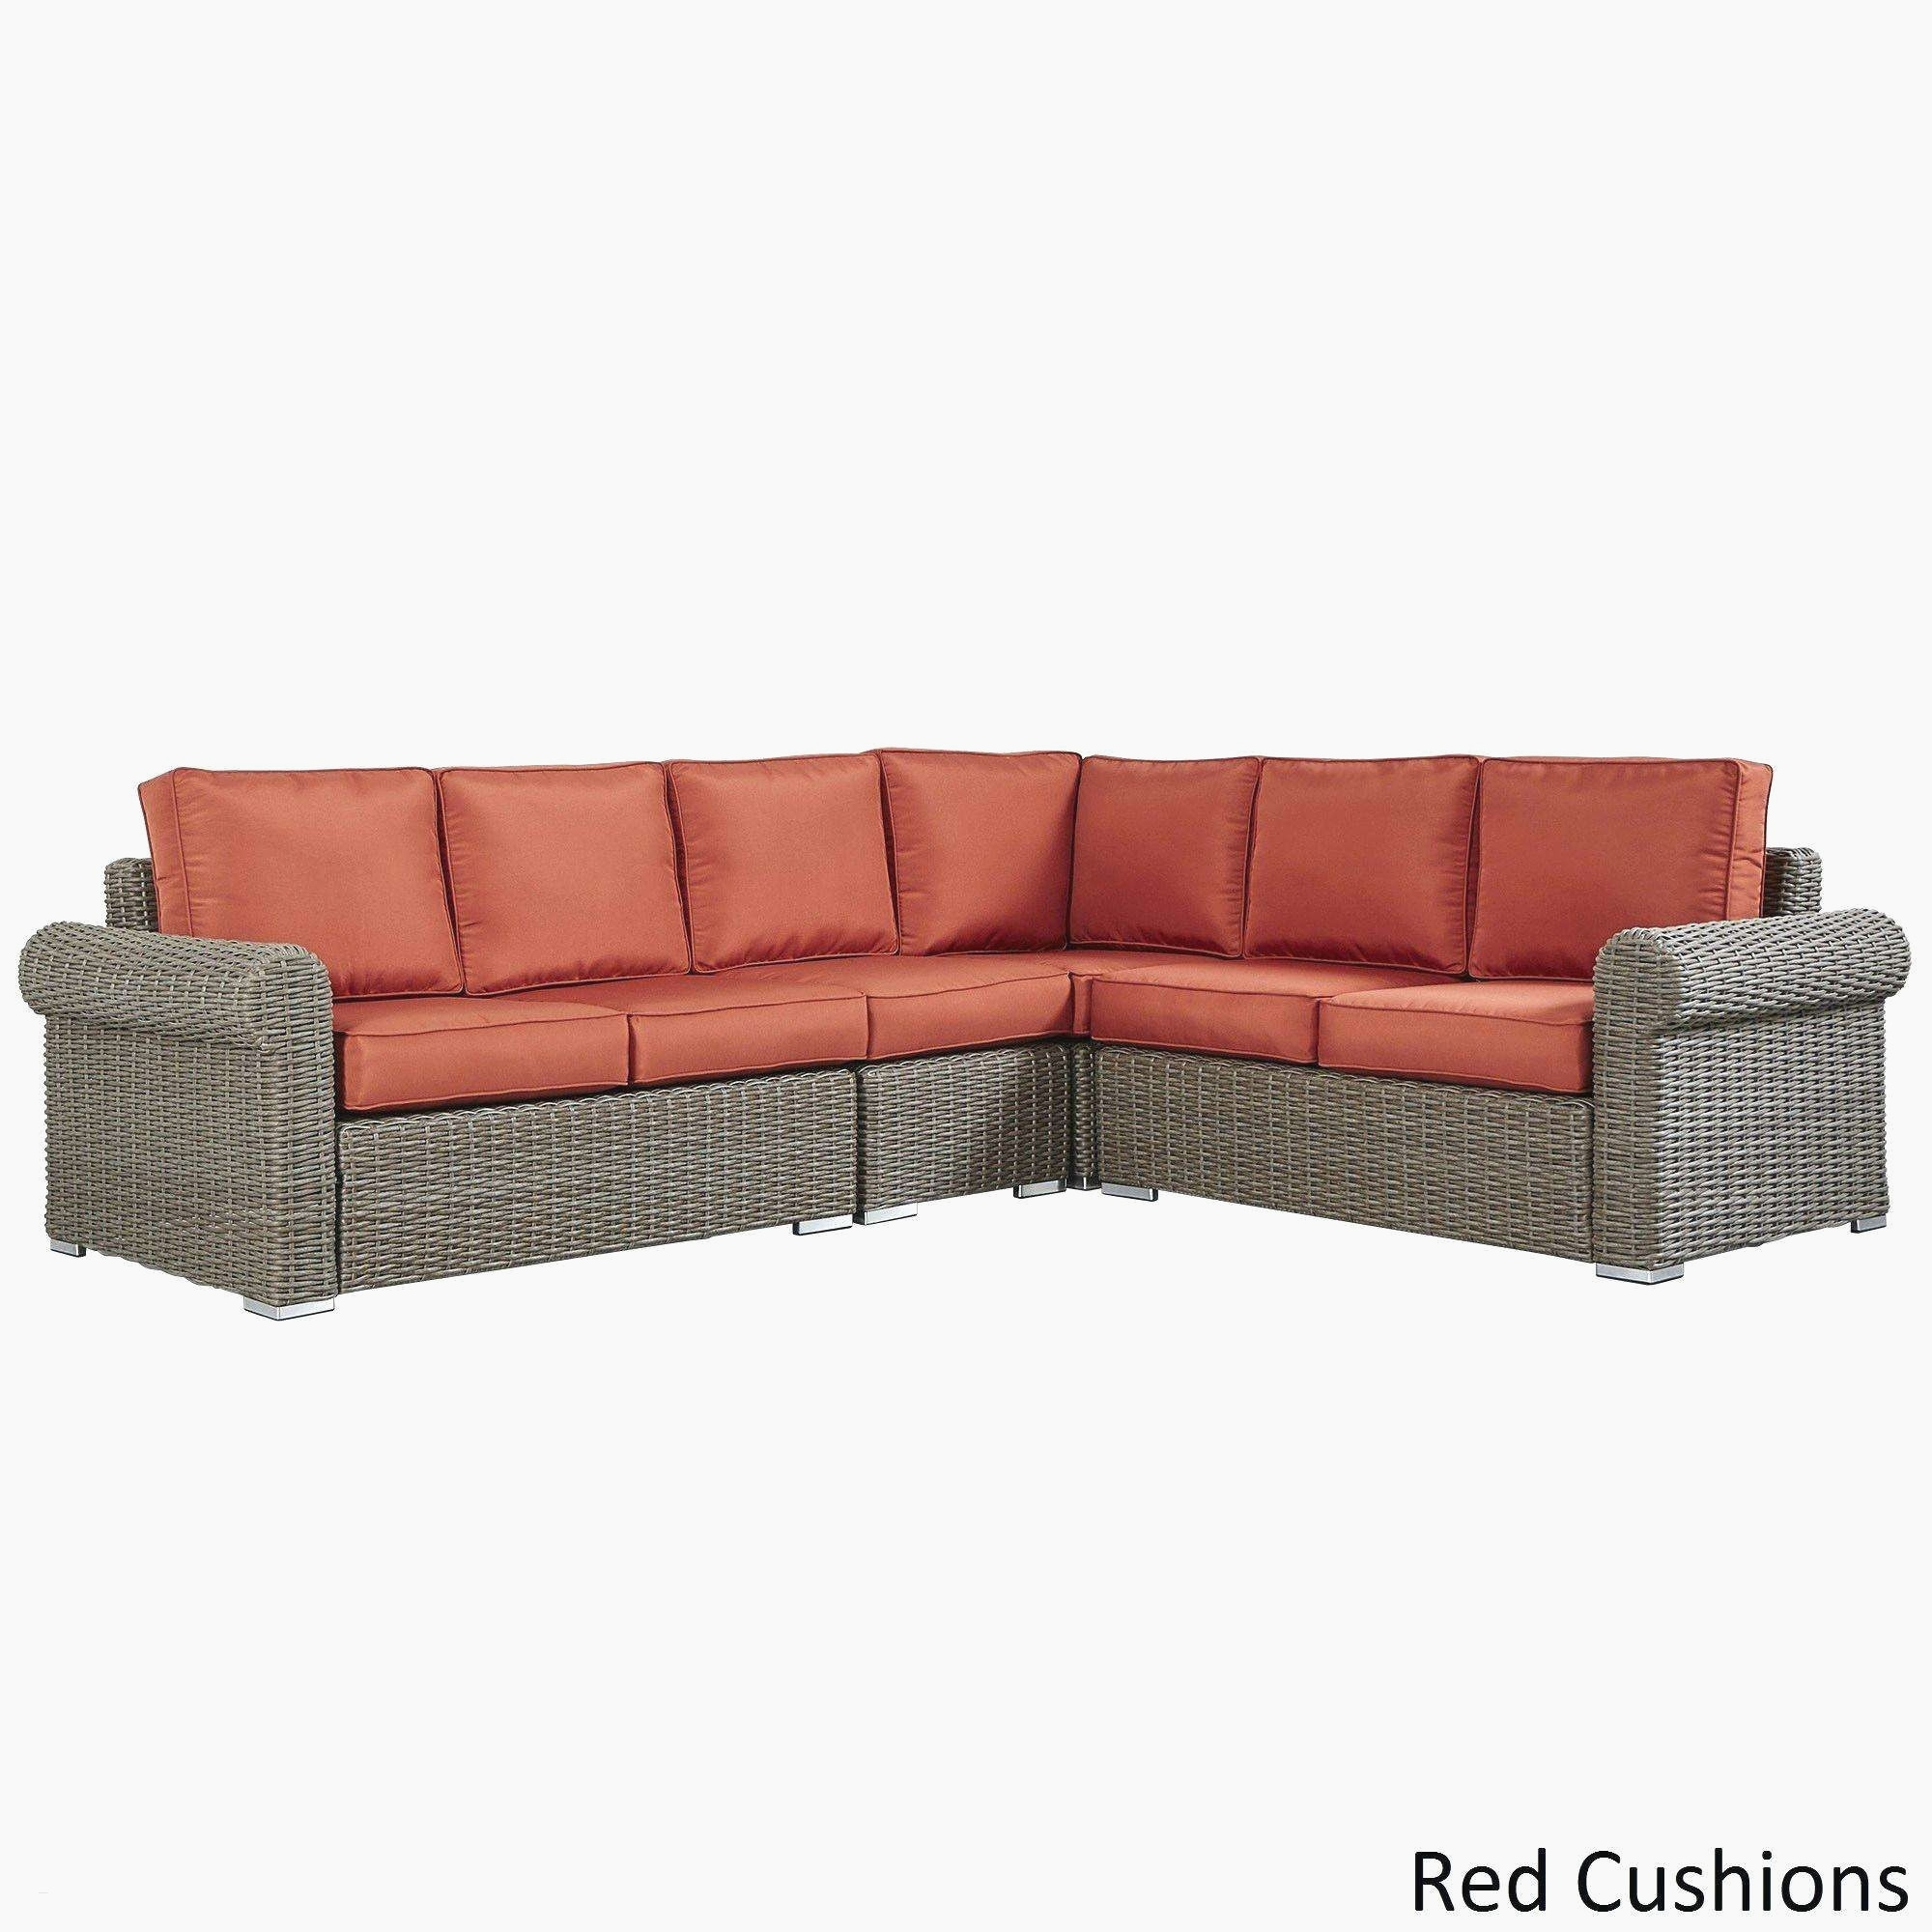 60 Awesome Sectional Sleeper Sofa With Chaise Collection 6Y7K – Home Throughout Arrowmask 2 Piece Sectionals With Sleeper & Right Facing Chaise (View 17 of 25)